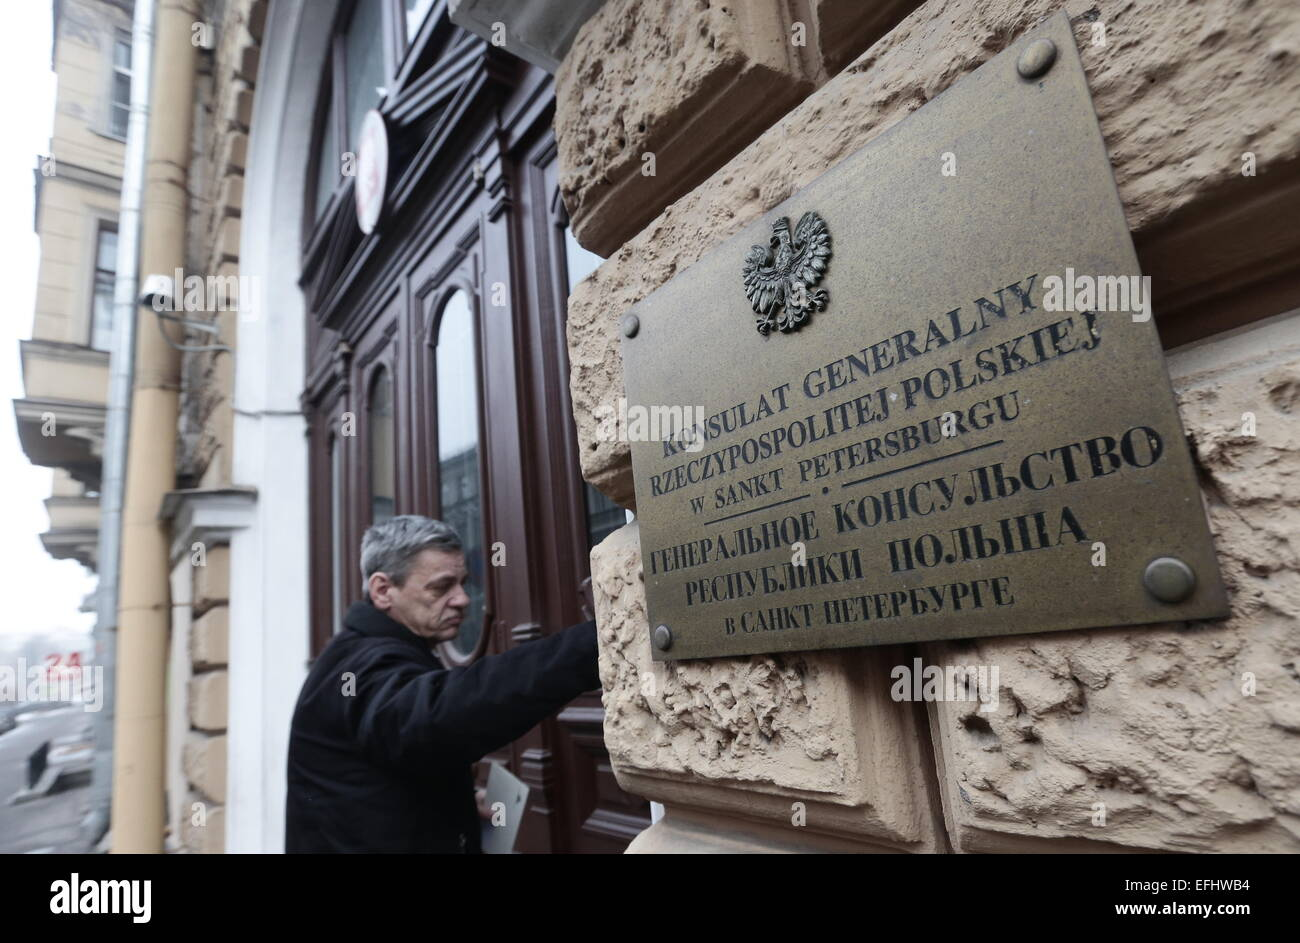 ST. PETERSBURG, RUSSIA. An image dated November 17, 2014, showing an entrance to the Polish Consulate General in - Stock Image